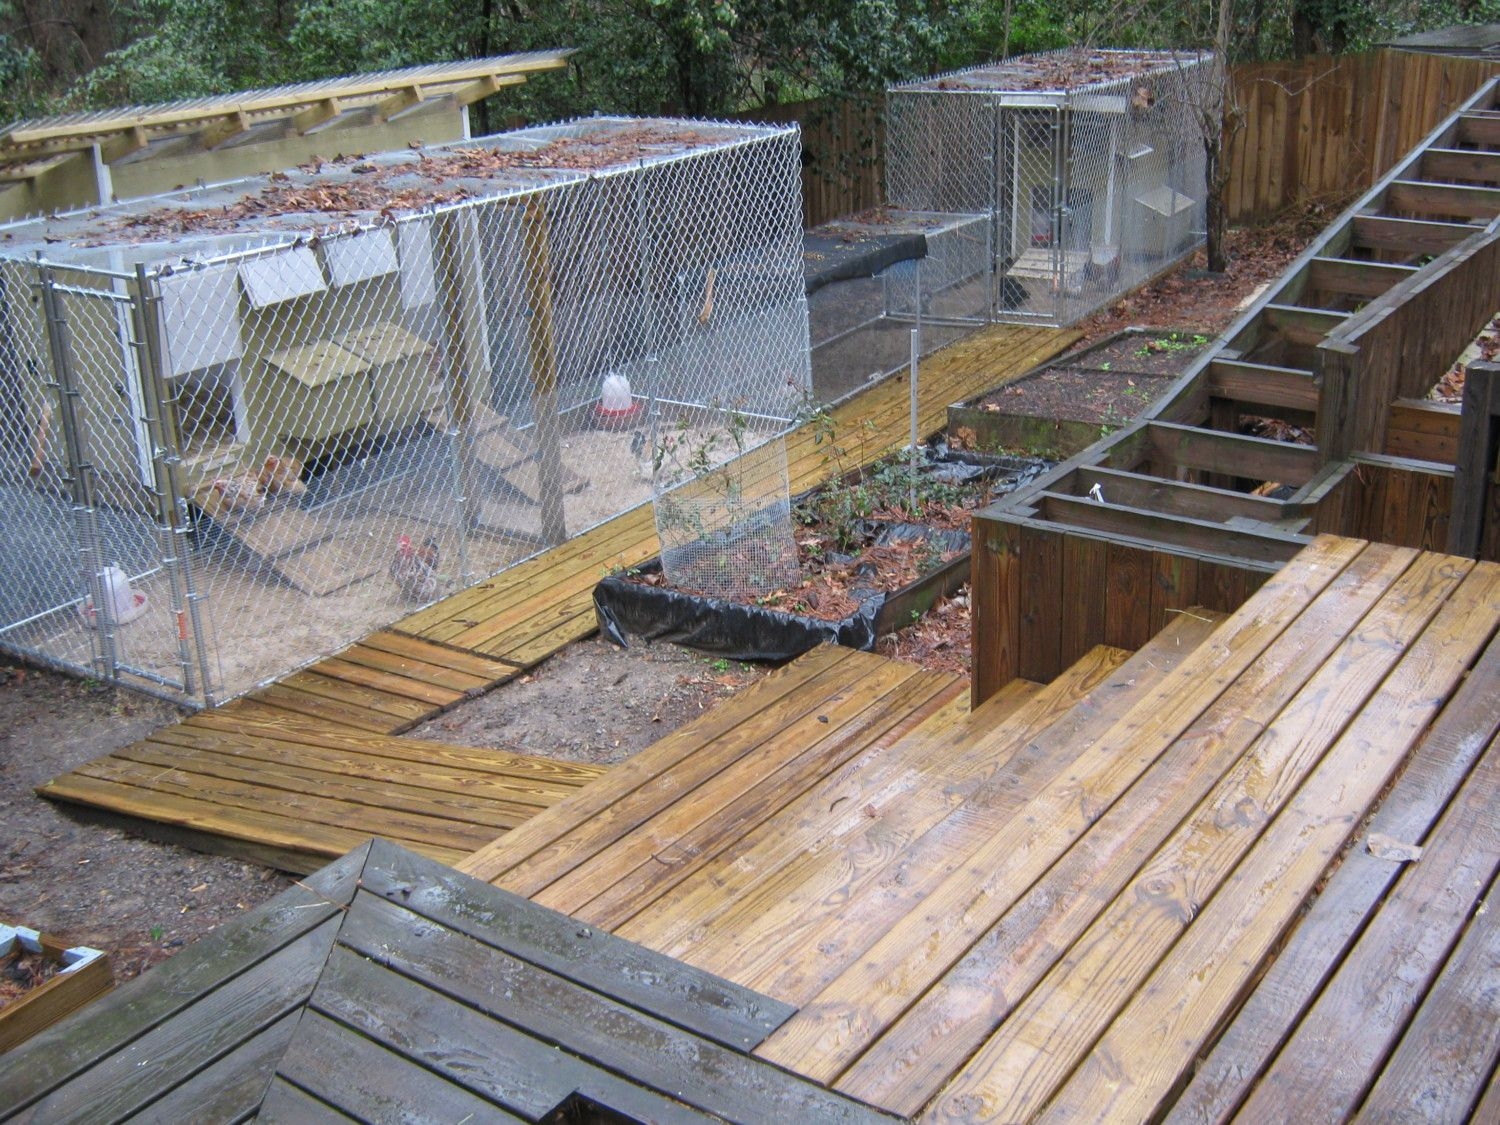 georgiagail's photos in Dog Kennel vs Coop with Run